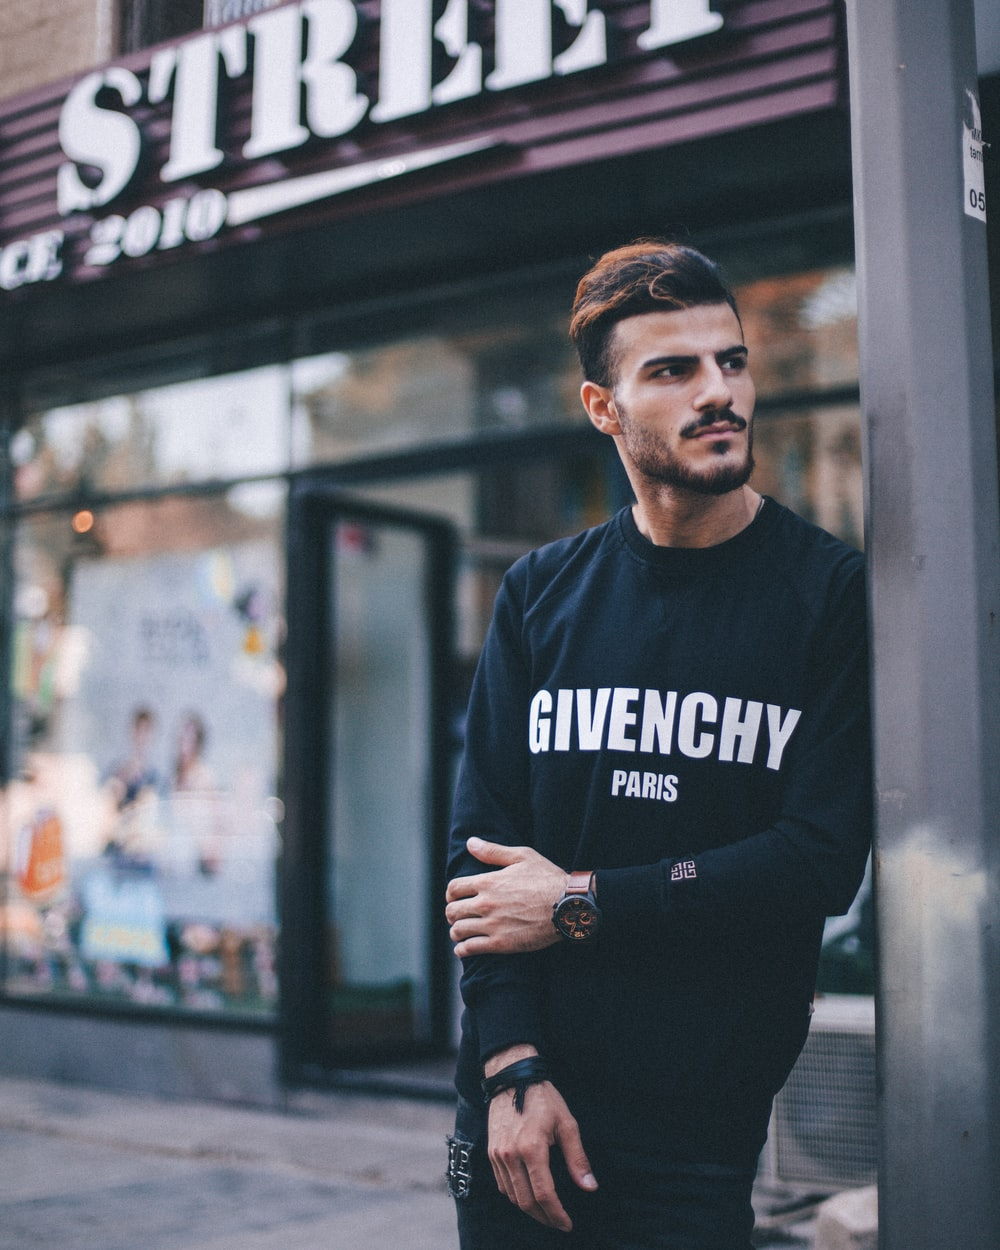 man in black Givenchy sweatshirt standing beside of post in front of Strek store during daytime shallow focus photography